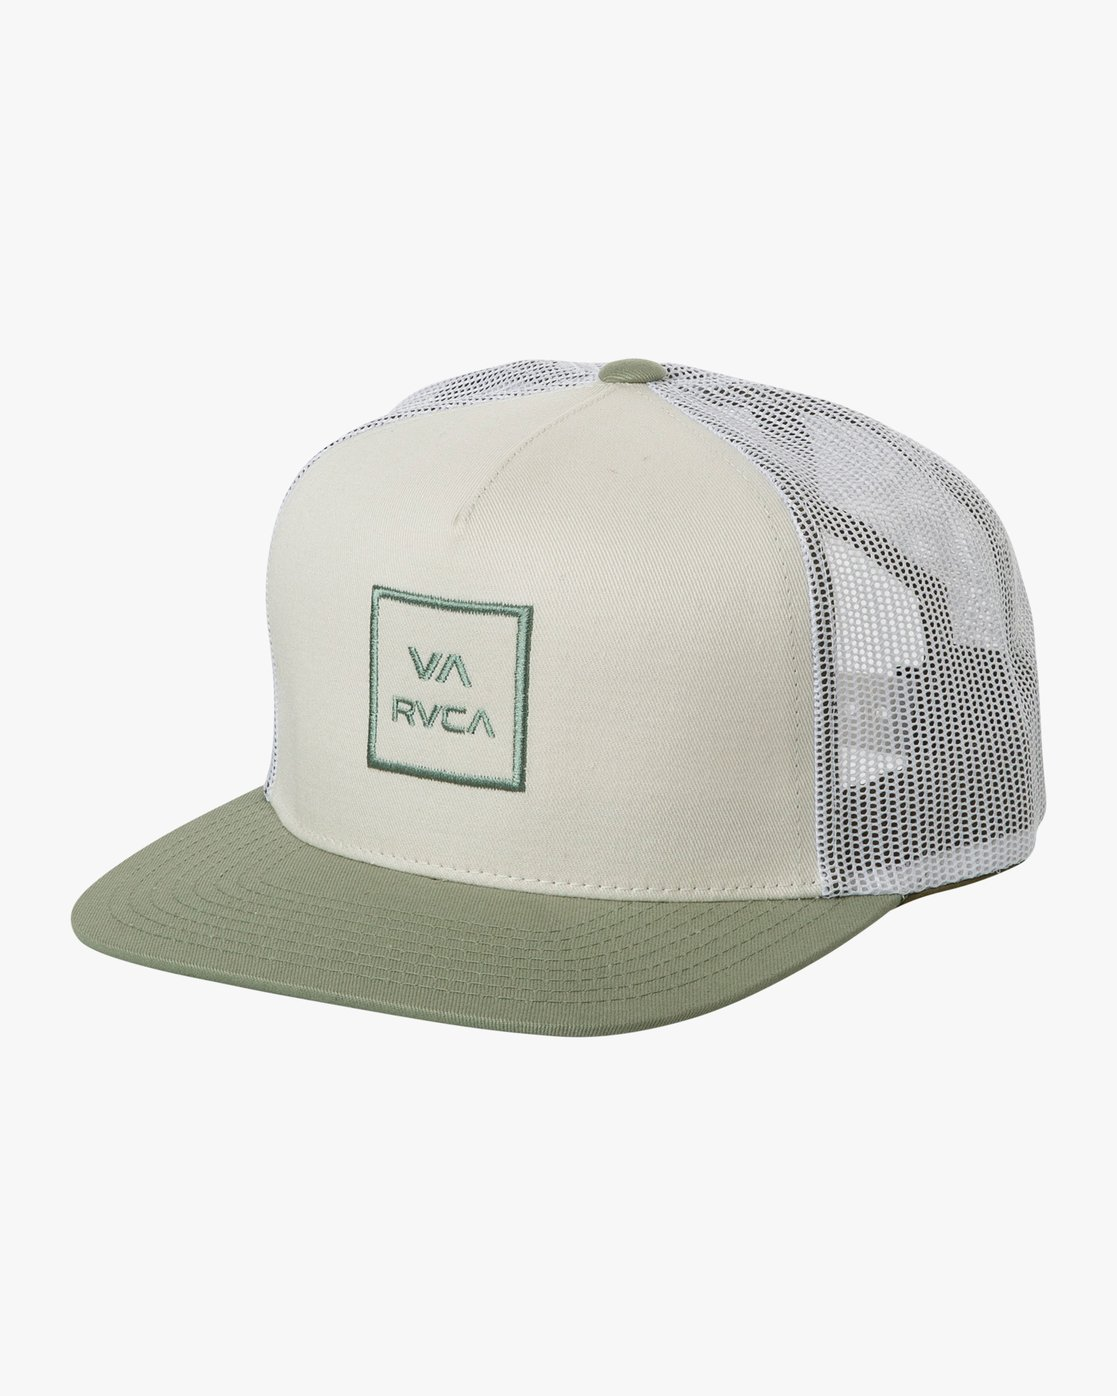 0 VA All The Way Trucker Hat III White MAAHWVWY RVCA